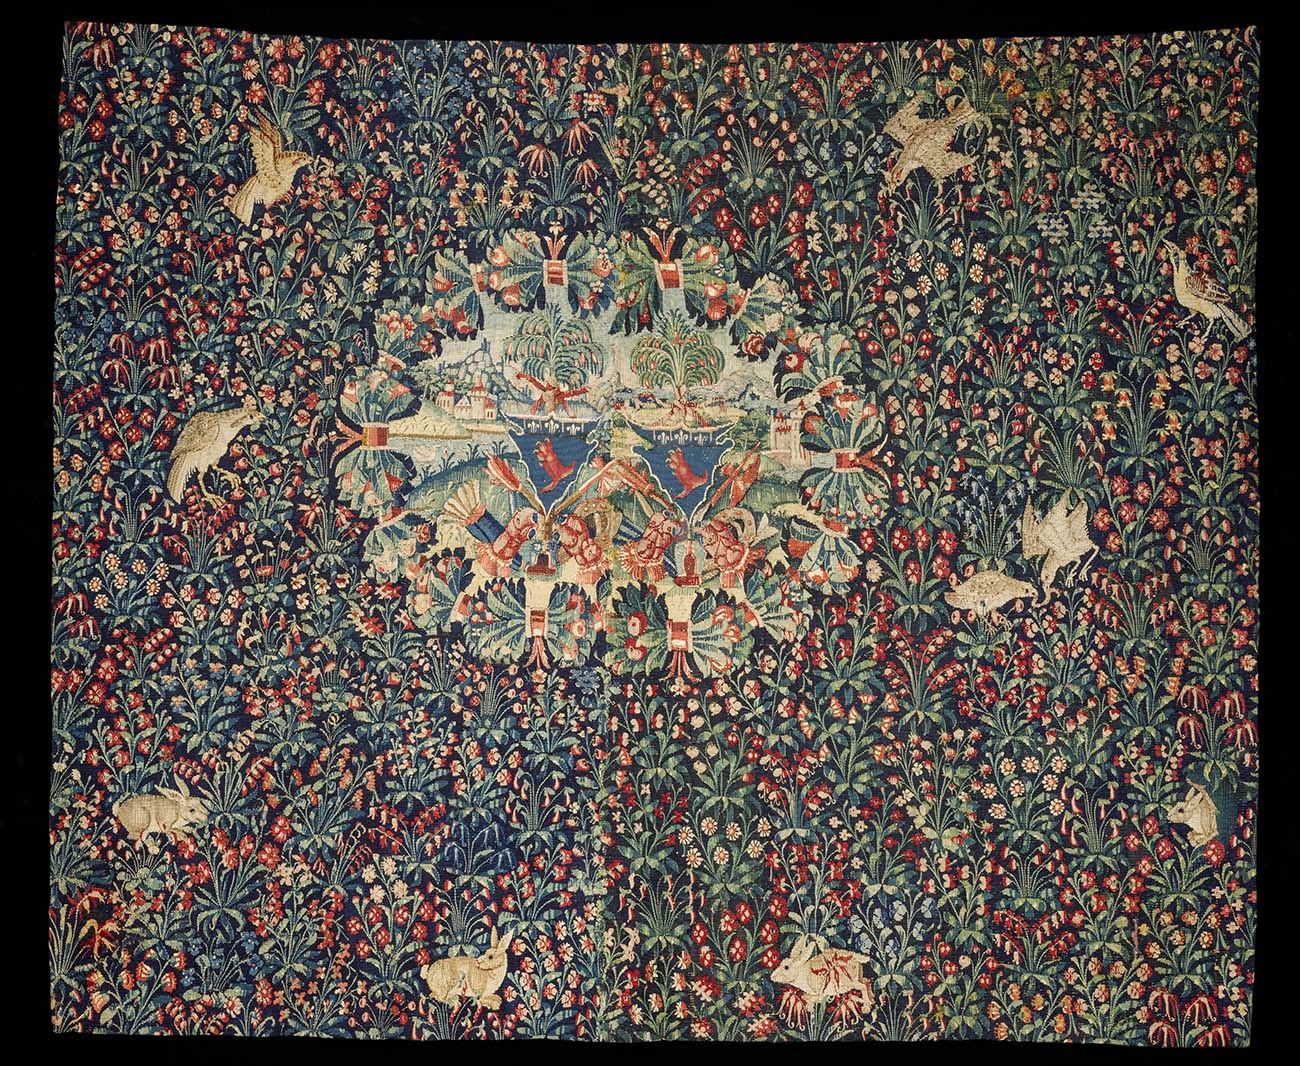 Colorful tapestry featuring birds, rabbits, and flowers.